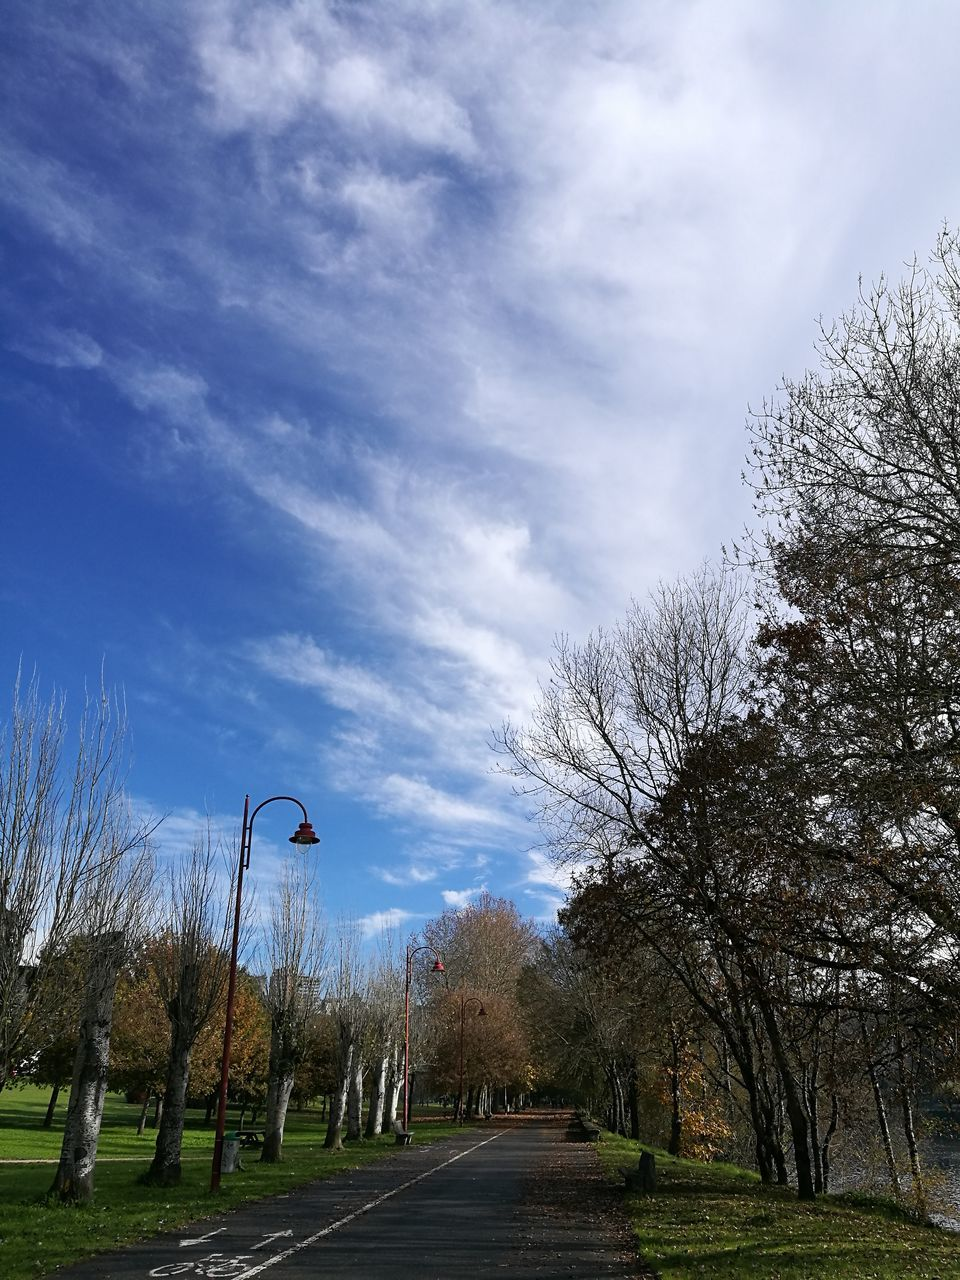 tree, the way forward, sky, bare tree, nature, day, outdoors, tranquility, cloud - sky, tranquil scene, road, beauty in nature, scenics, no people, branch, animal themes, grass, bird